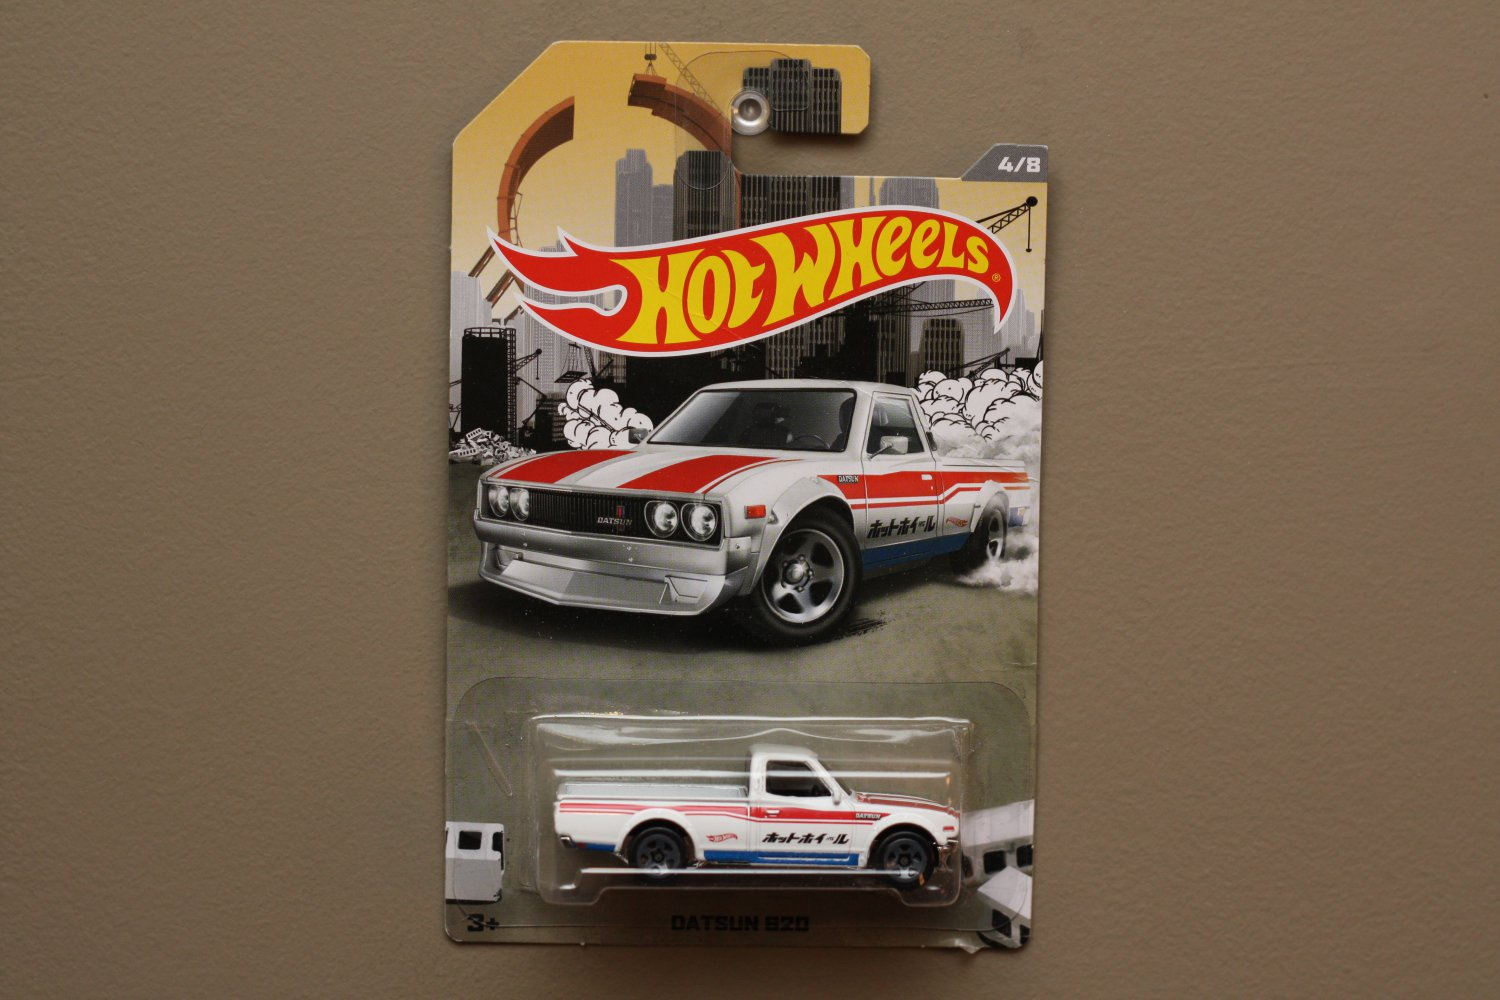 Hot wheels 2016 rad trucks datsun 620 for 9 salon hot wheels 2016